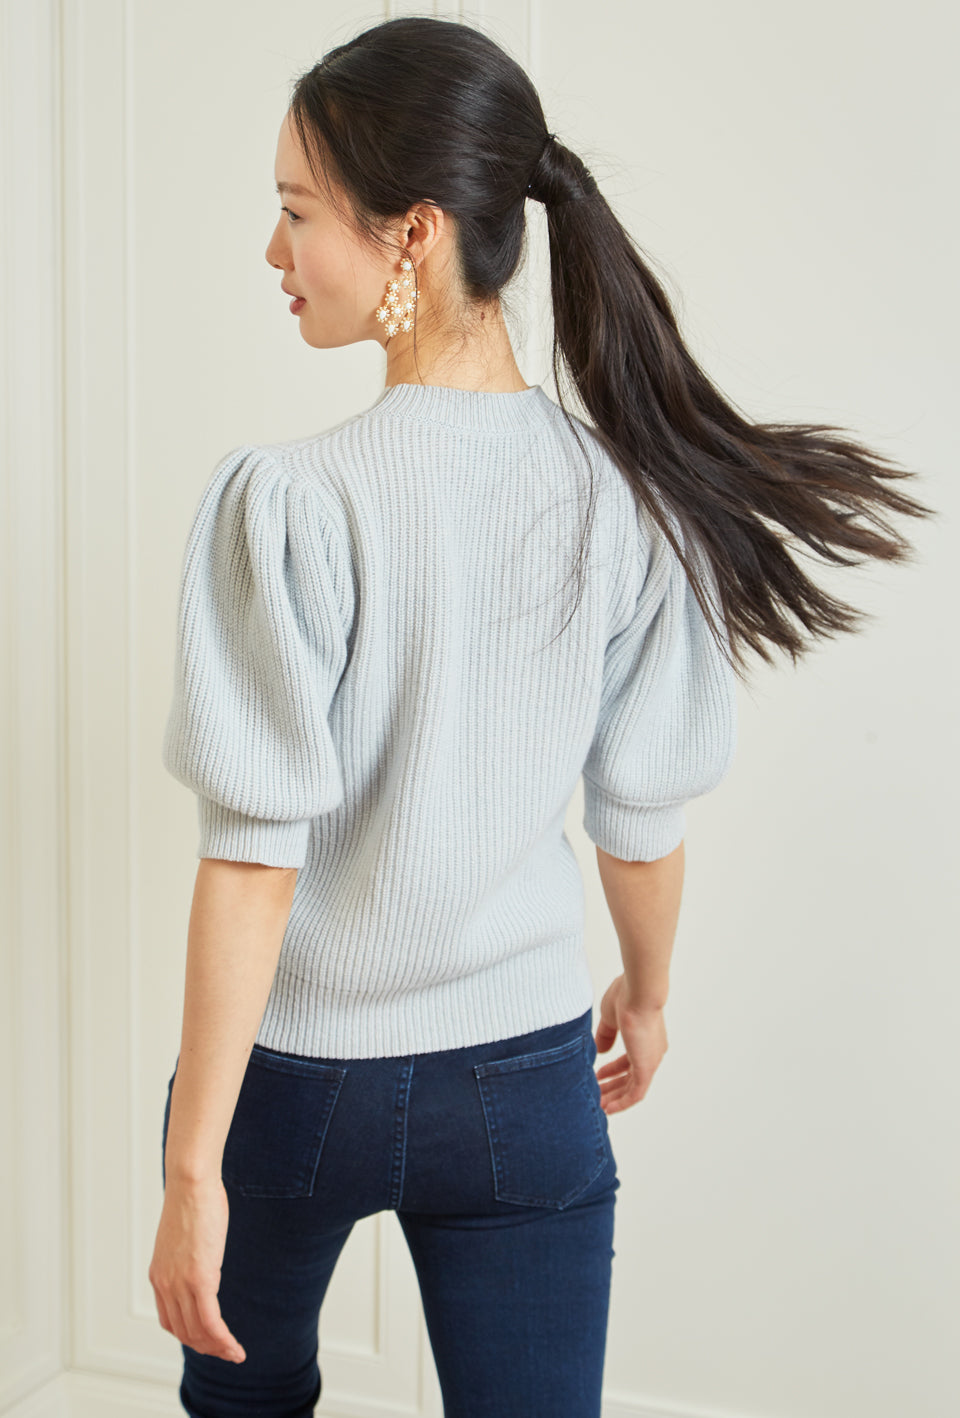 Cleo Pullover - Light Blue